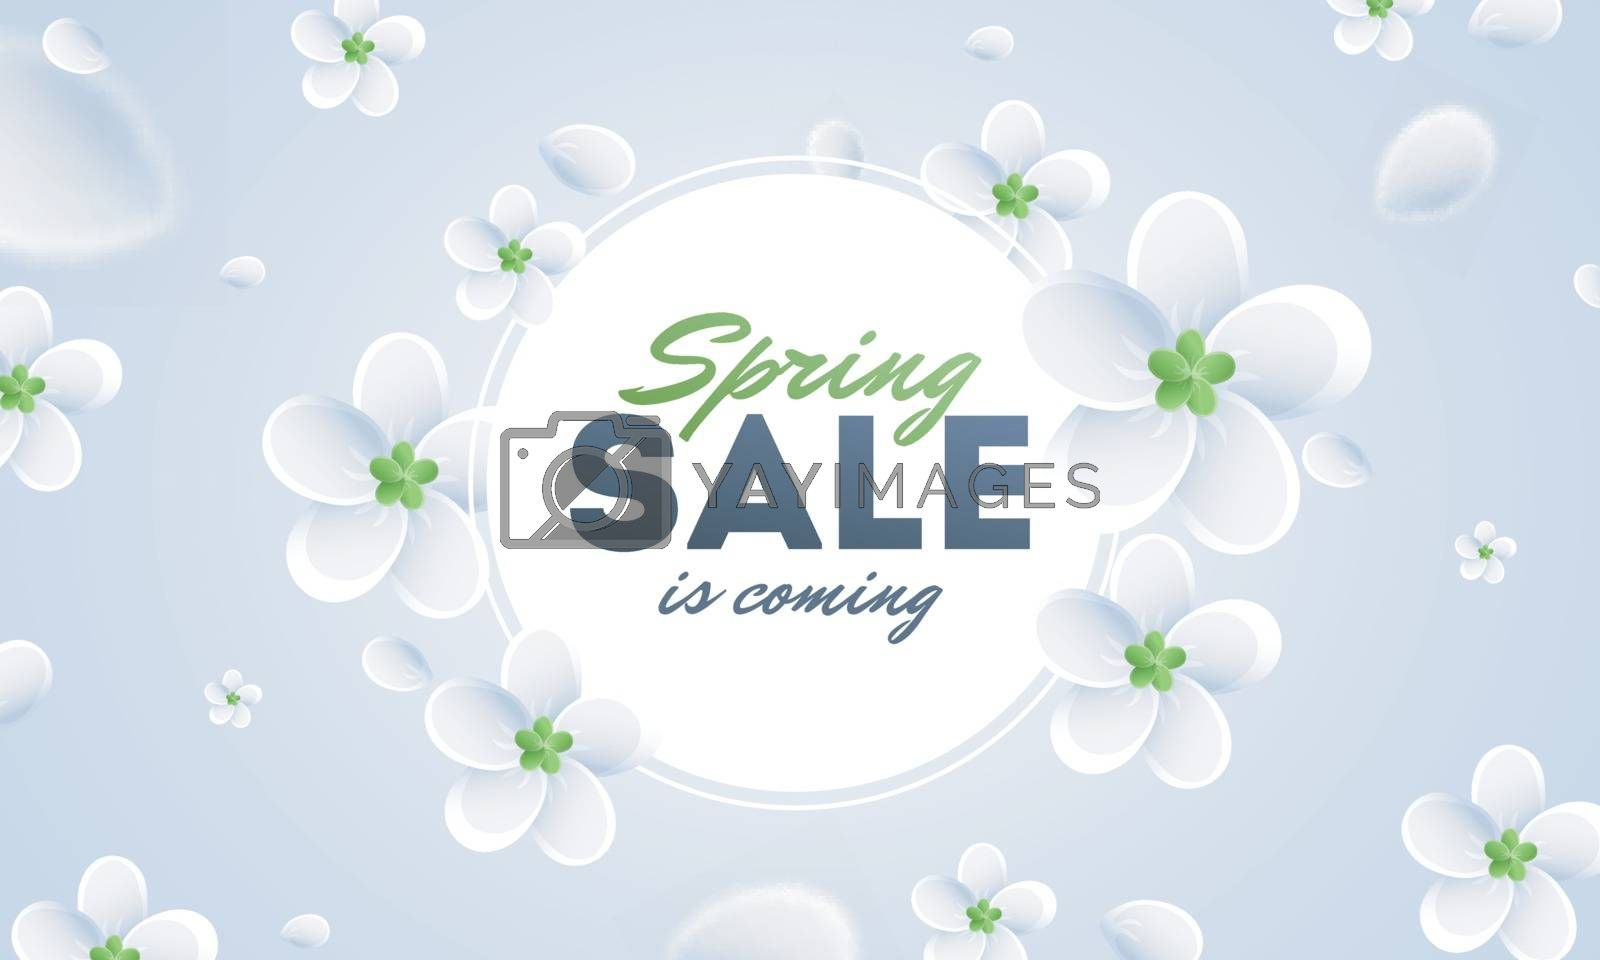 Royalty free image of Advertising poster or banner design decorated with white flowers by aispl